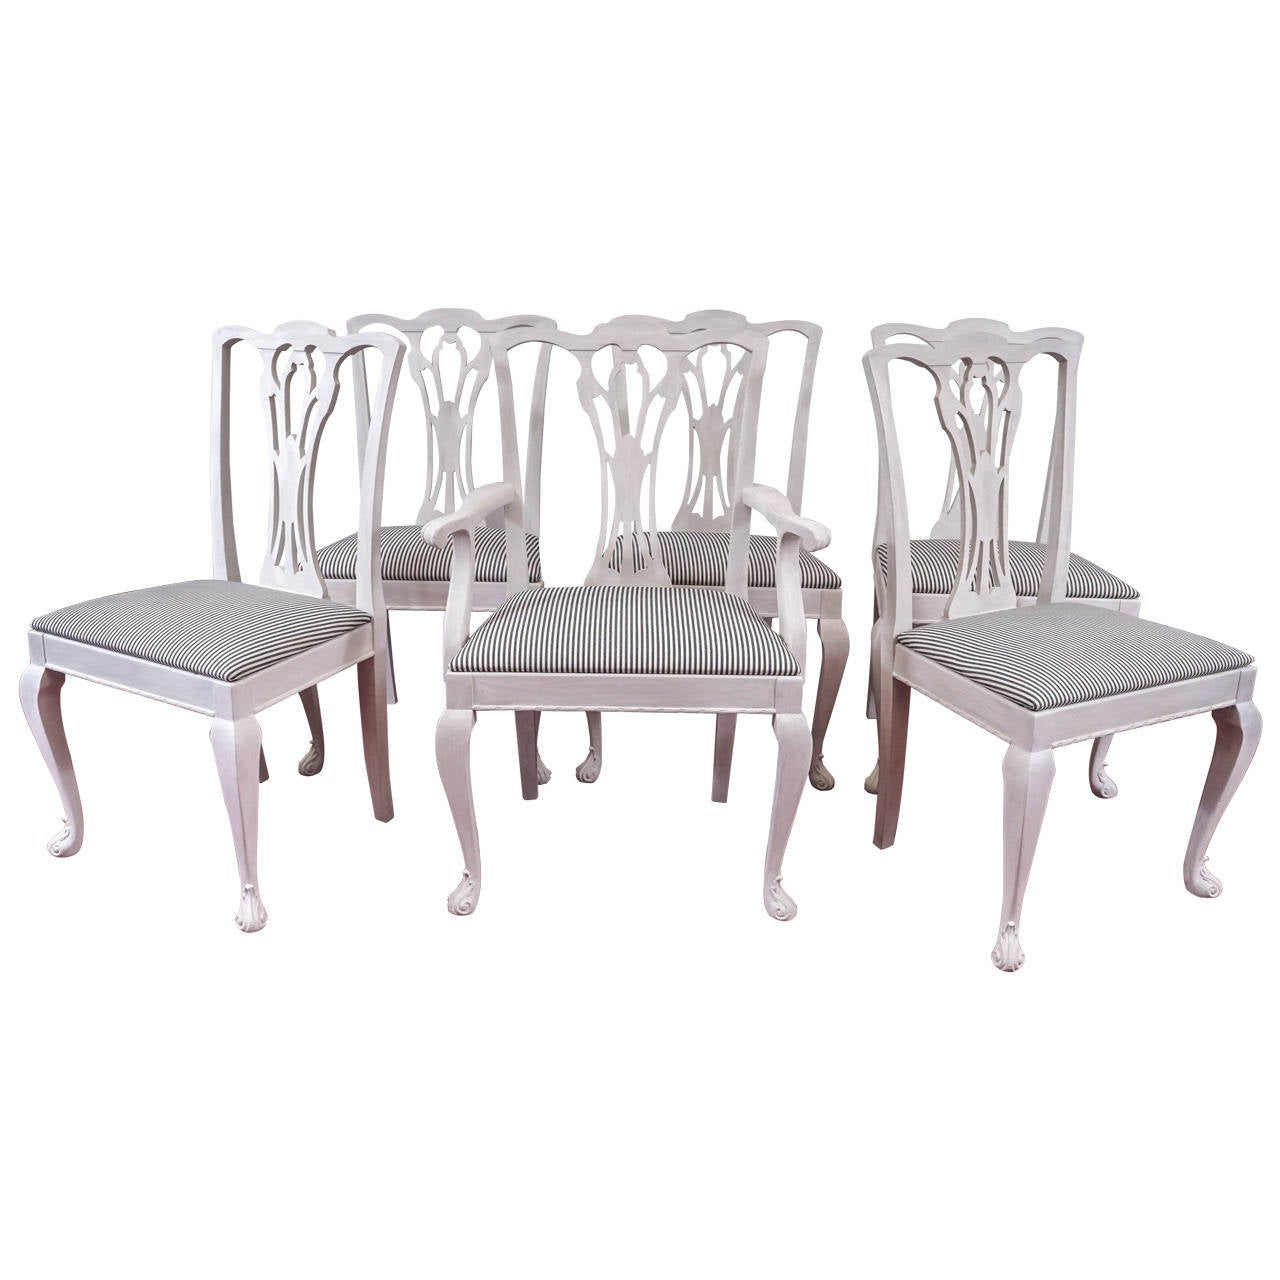 Six Painted Chippendale-Style Dining Chairs For Sale